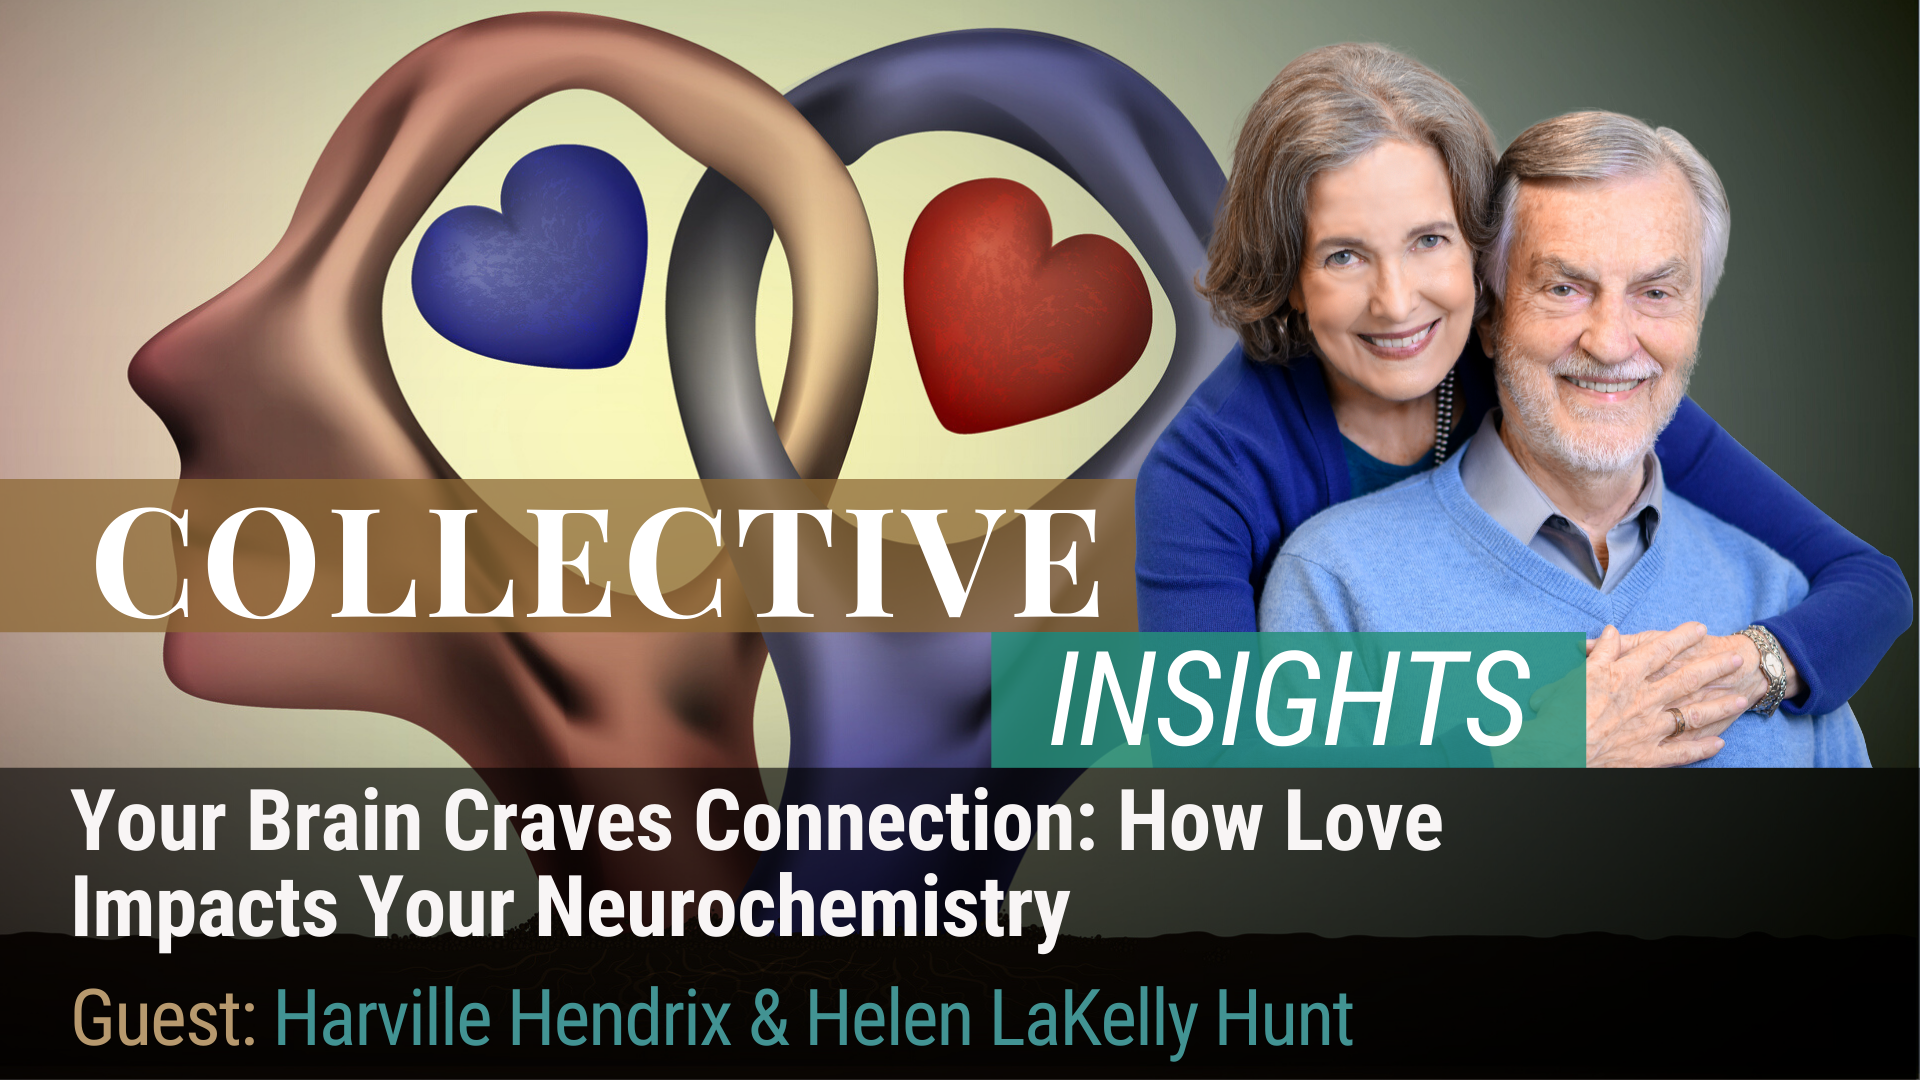 Your Brain Craves Connection: How Love Impacts Your Neurochemistry